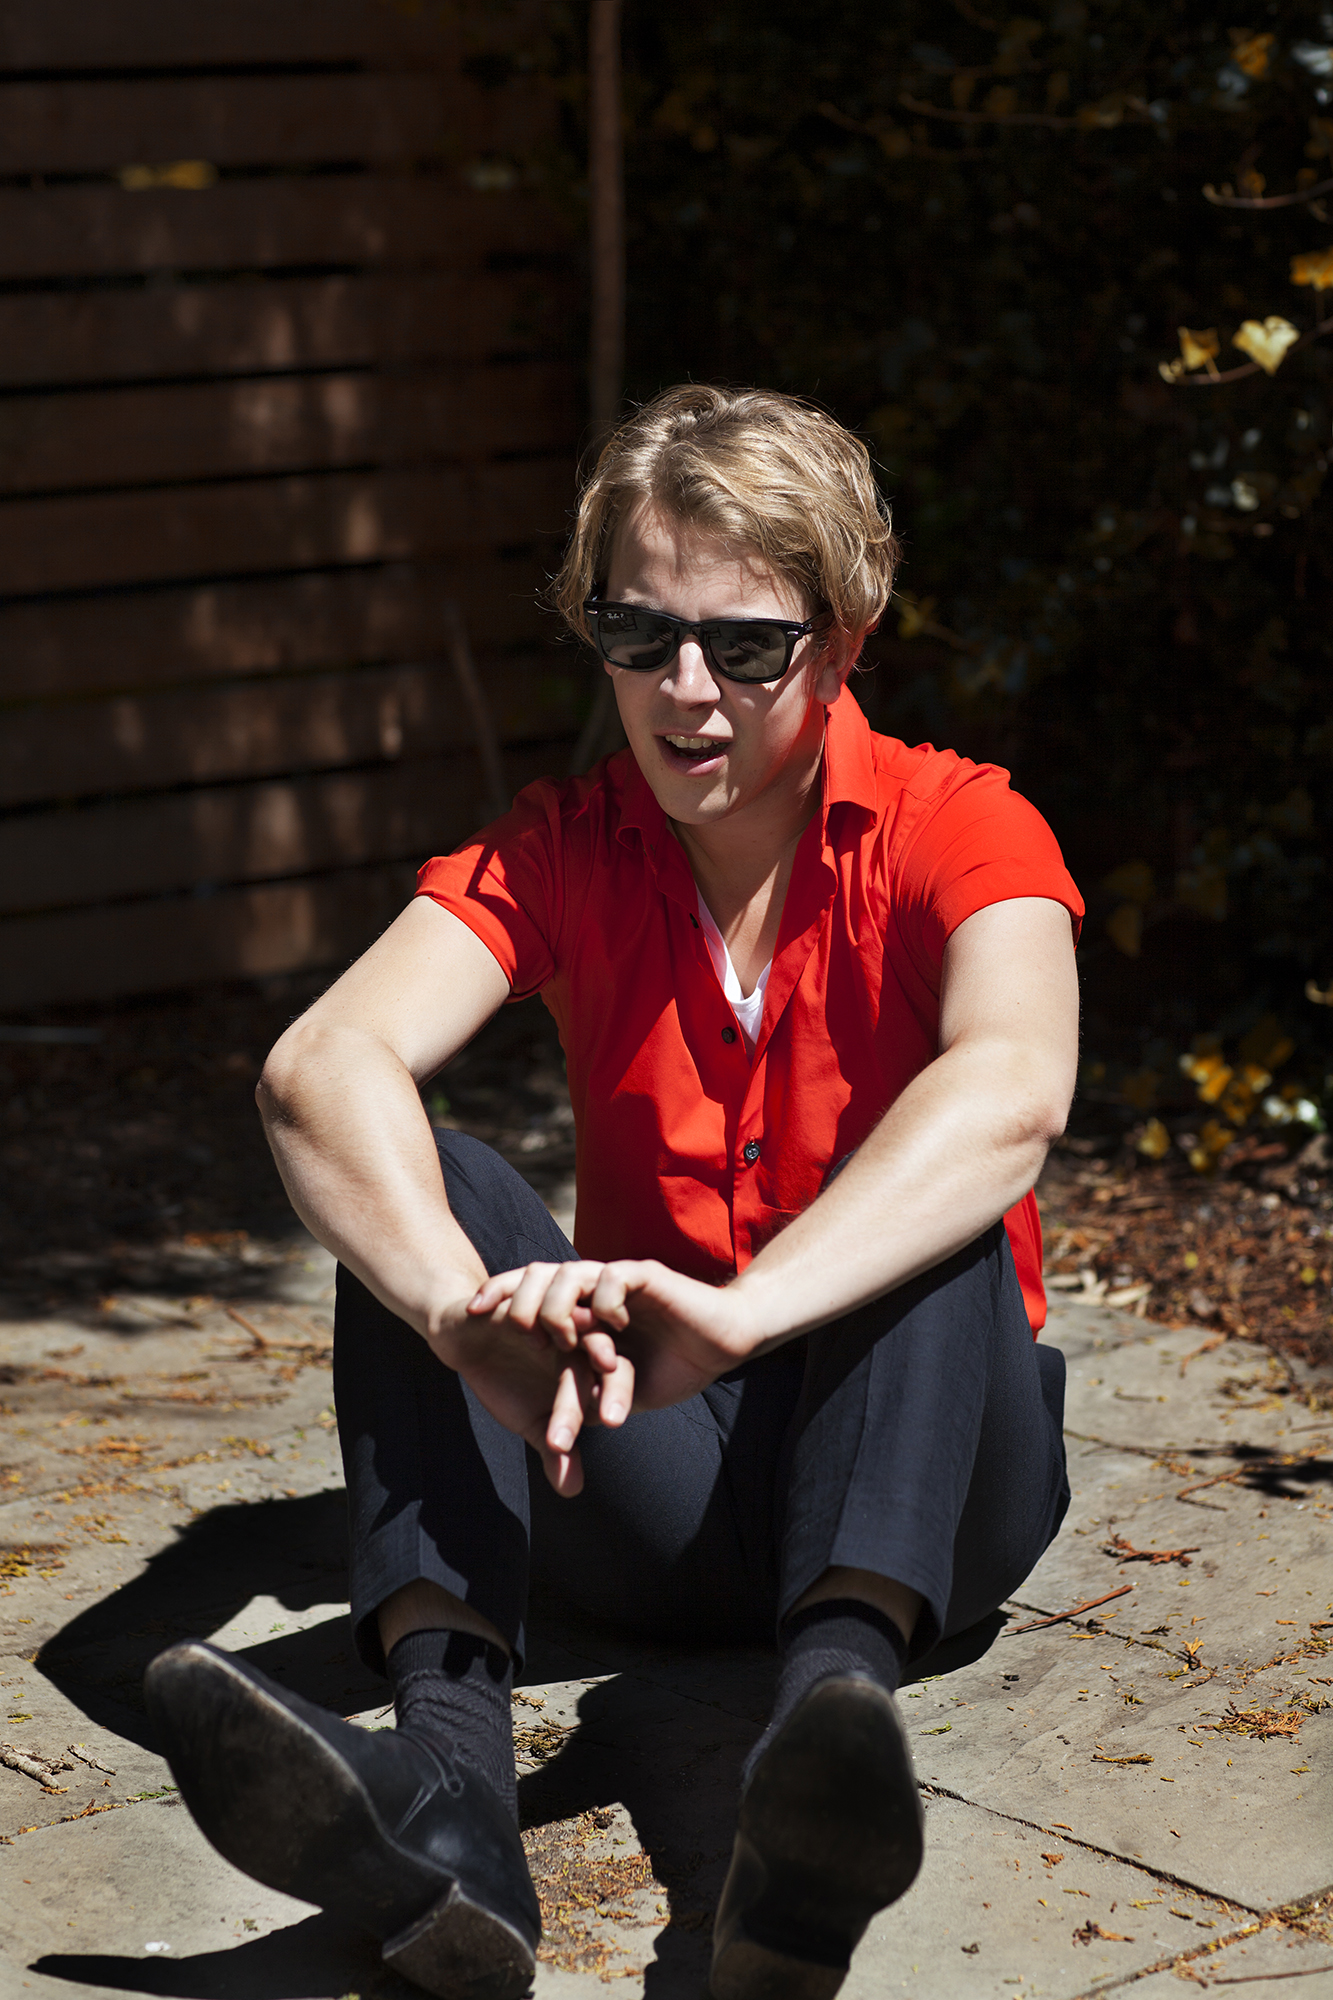 TomOdell_0227_HR.jpg